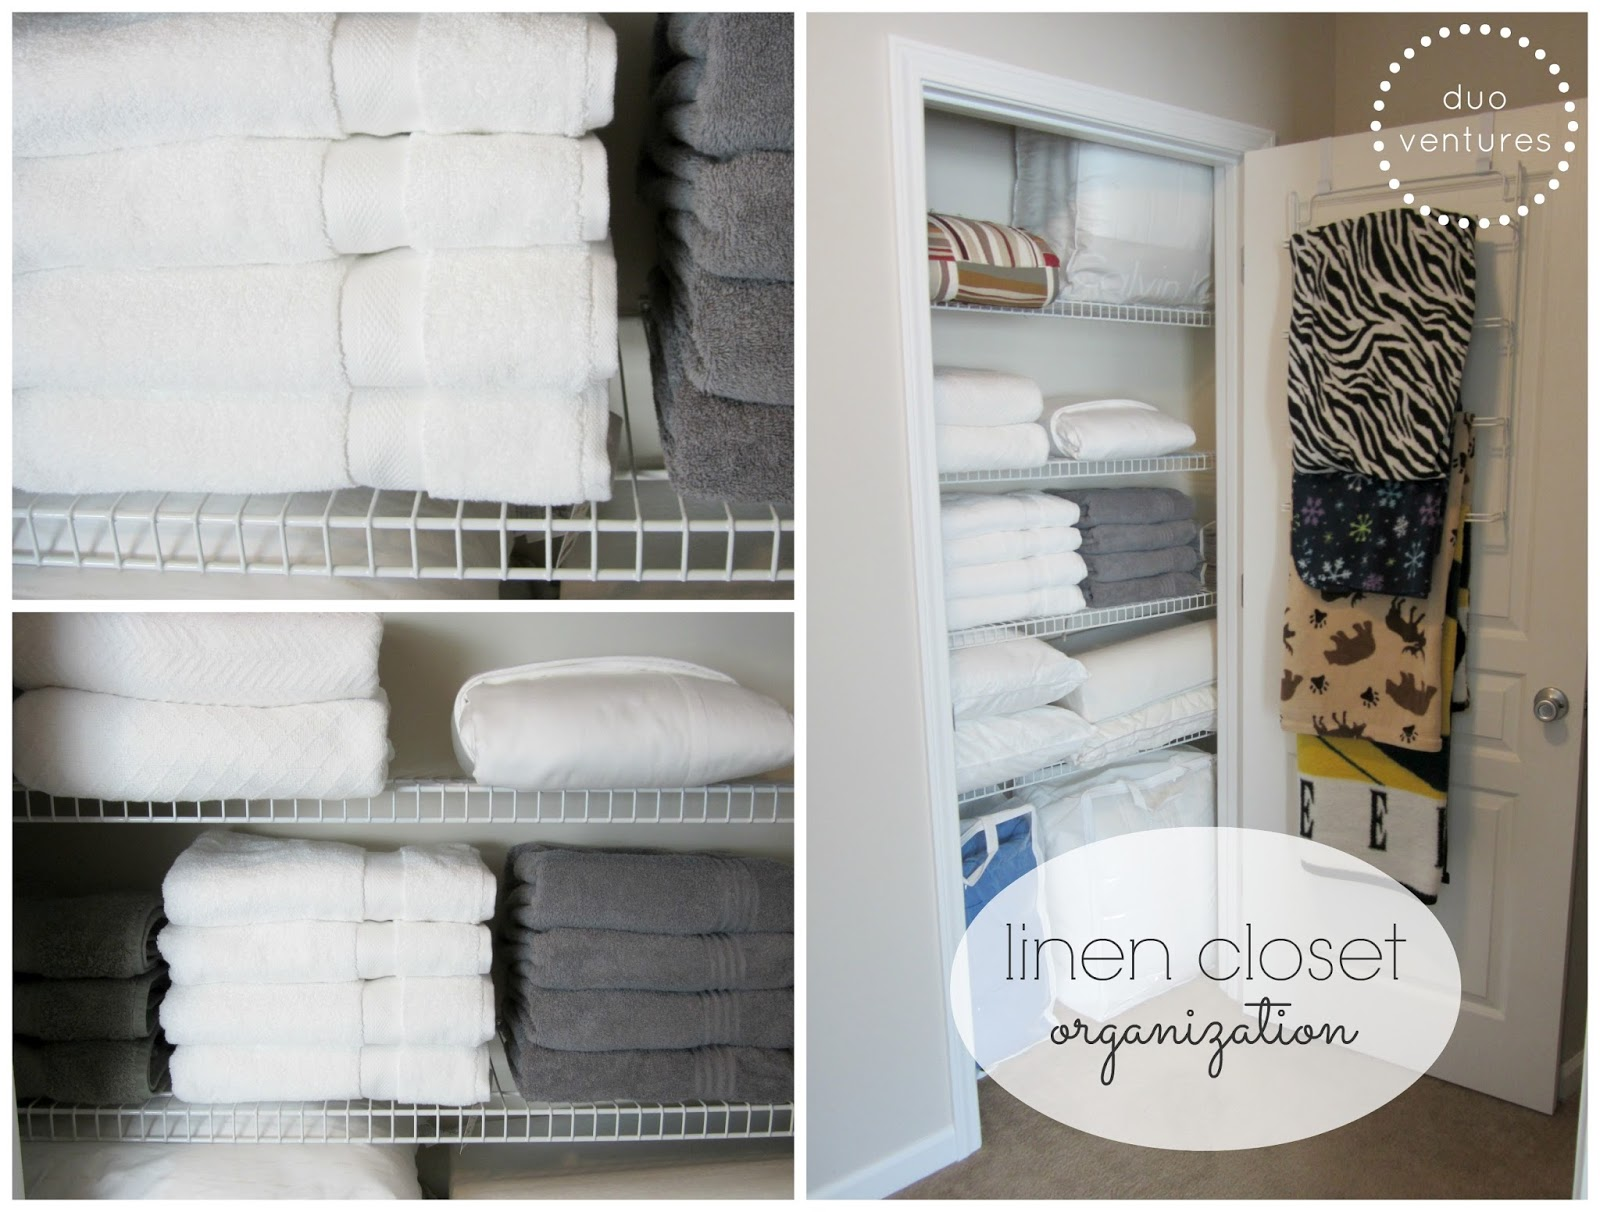 organizing the linen closet - Linen Closet